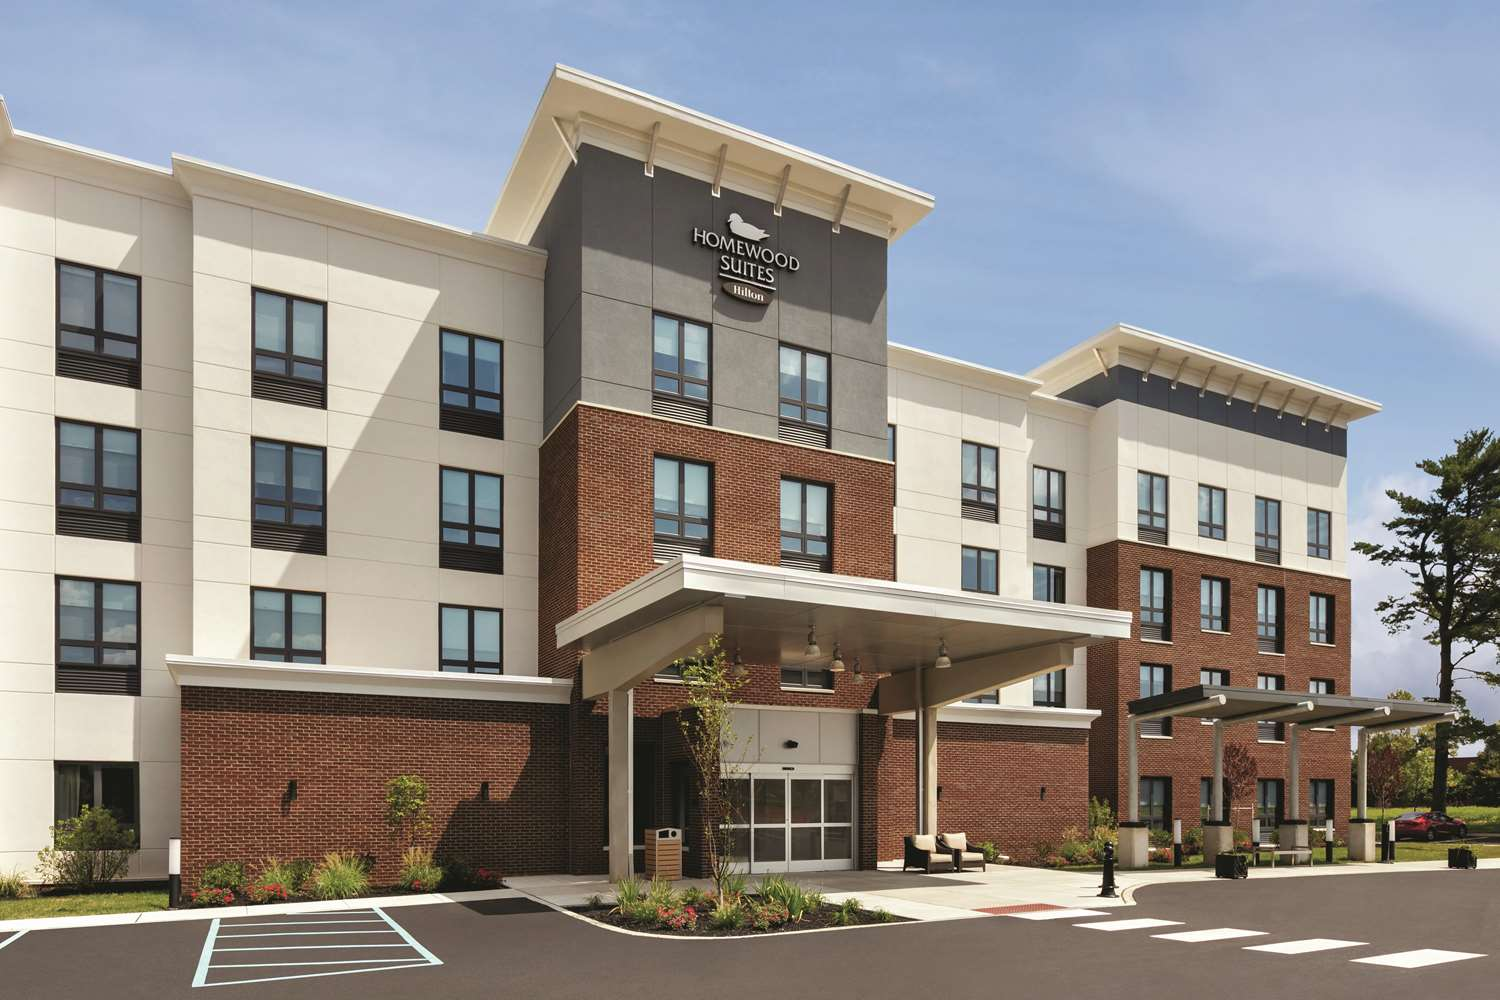 Exterior view - Homewood Suites by Hilton Horsham